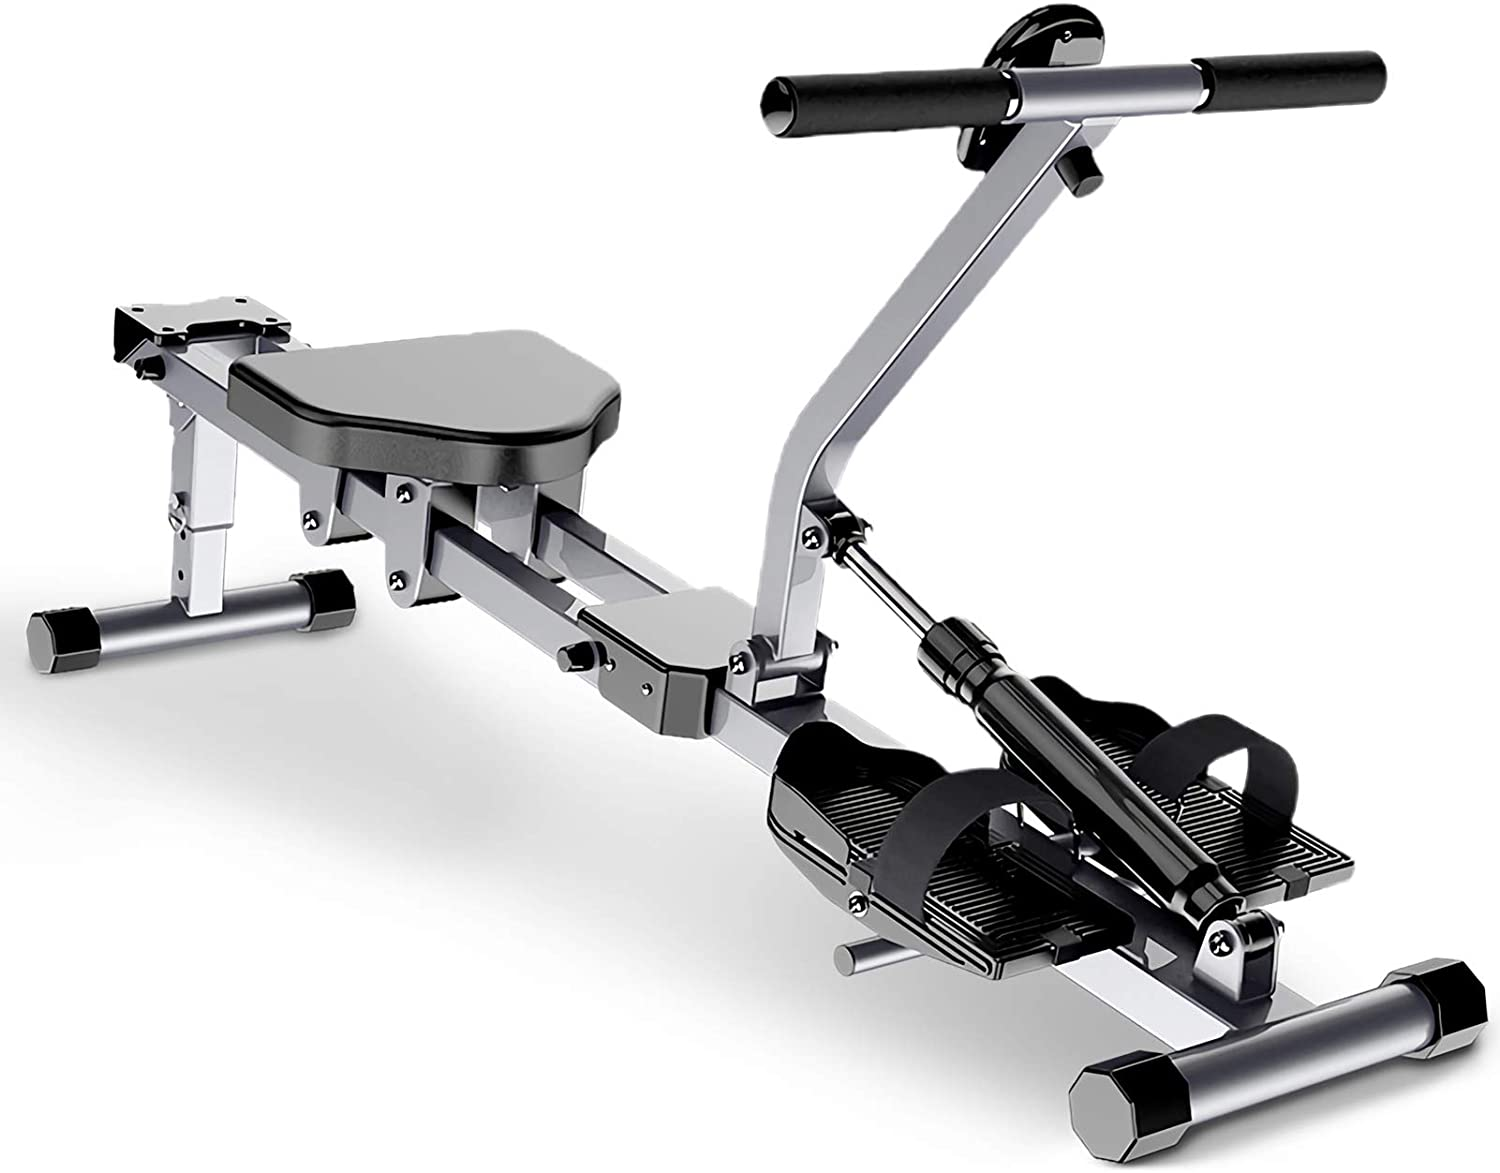 Rowing Machine Full Motion Rower Adjustable Resistance Foldable Cardio Fitness